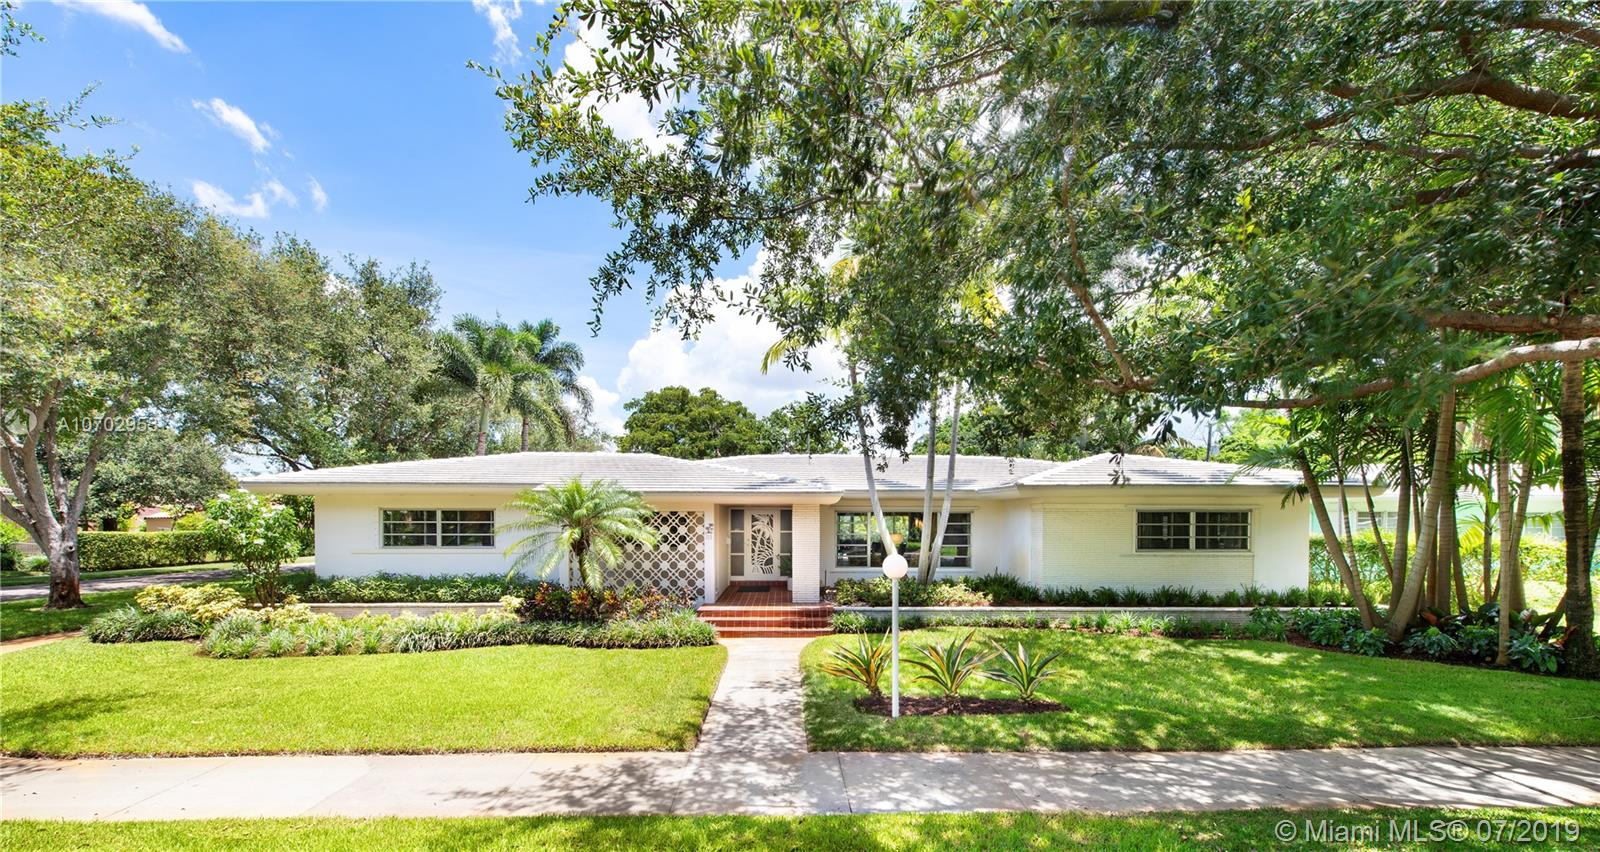 115 NE 94th St 33138 - One of Miami Shores Homes for Sale